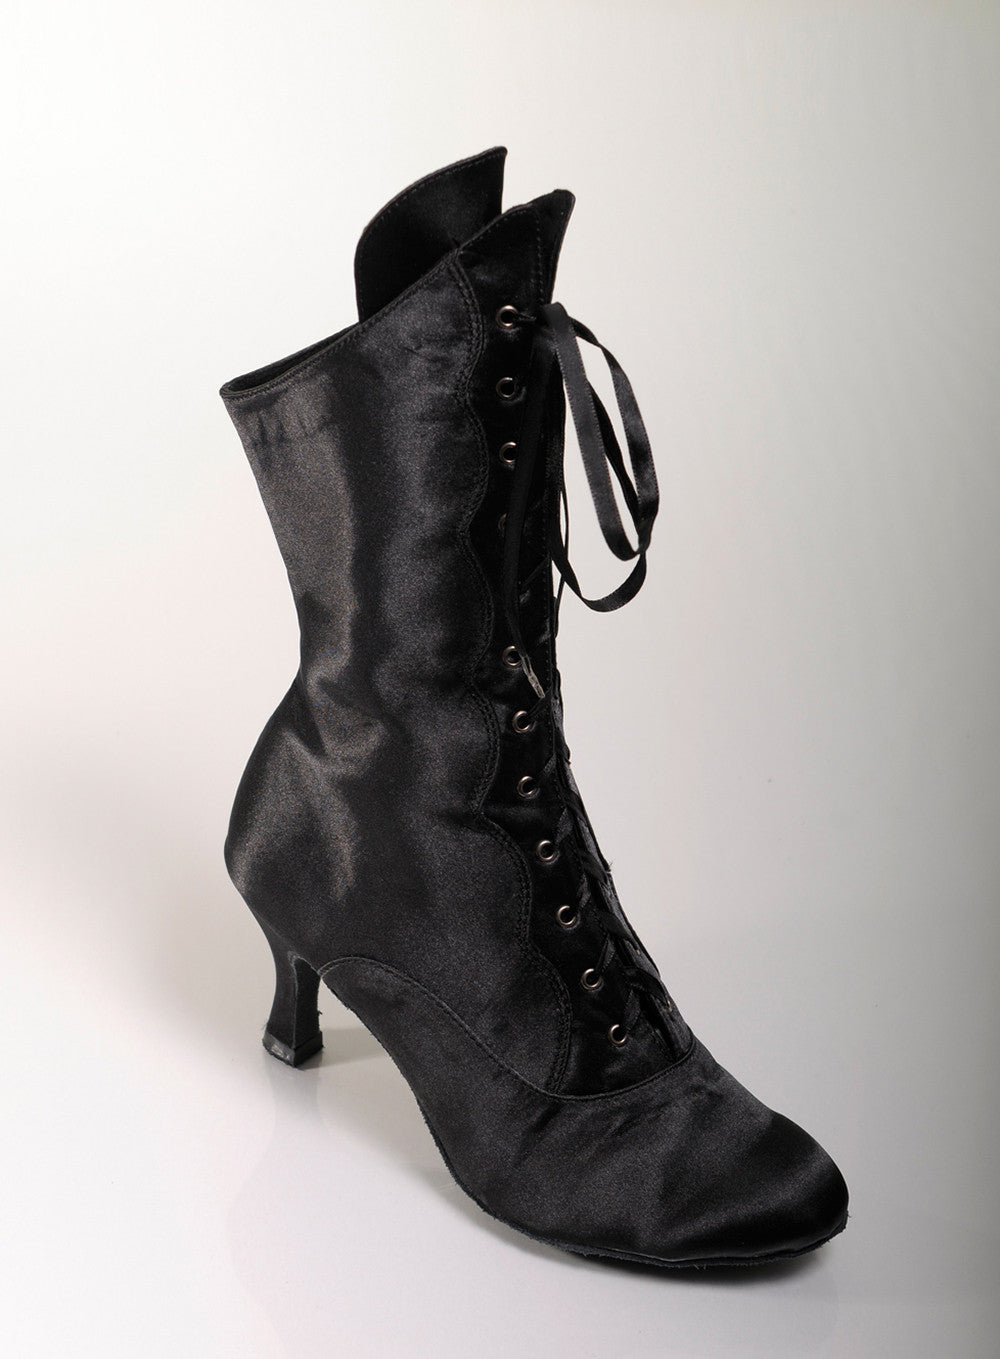 Black Satin low heel dance boots suede sole